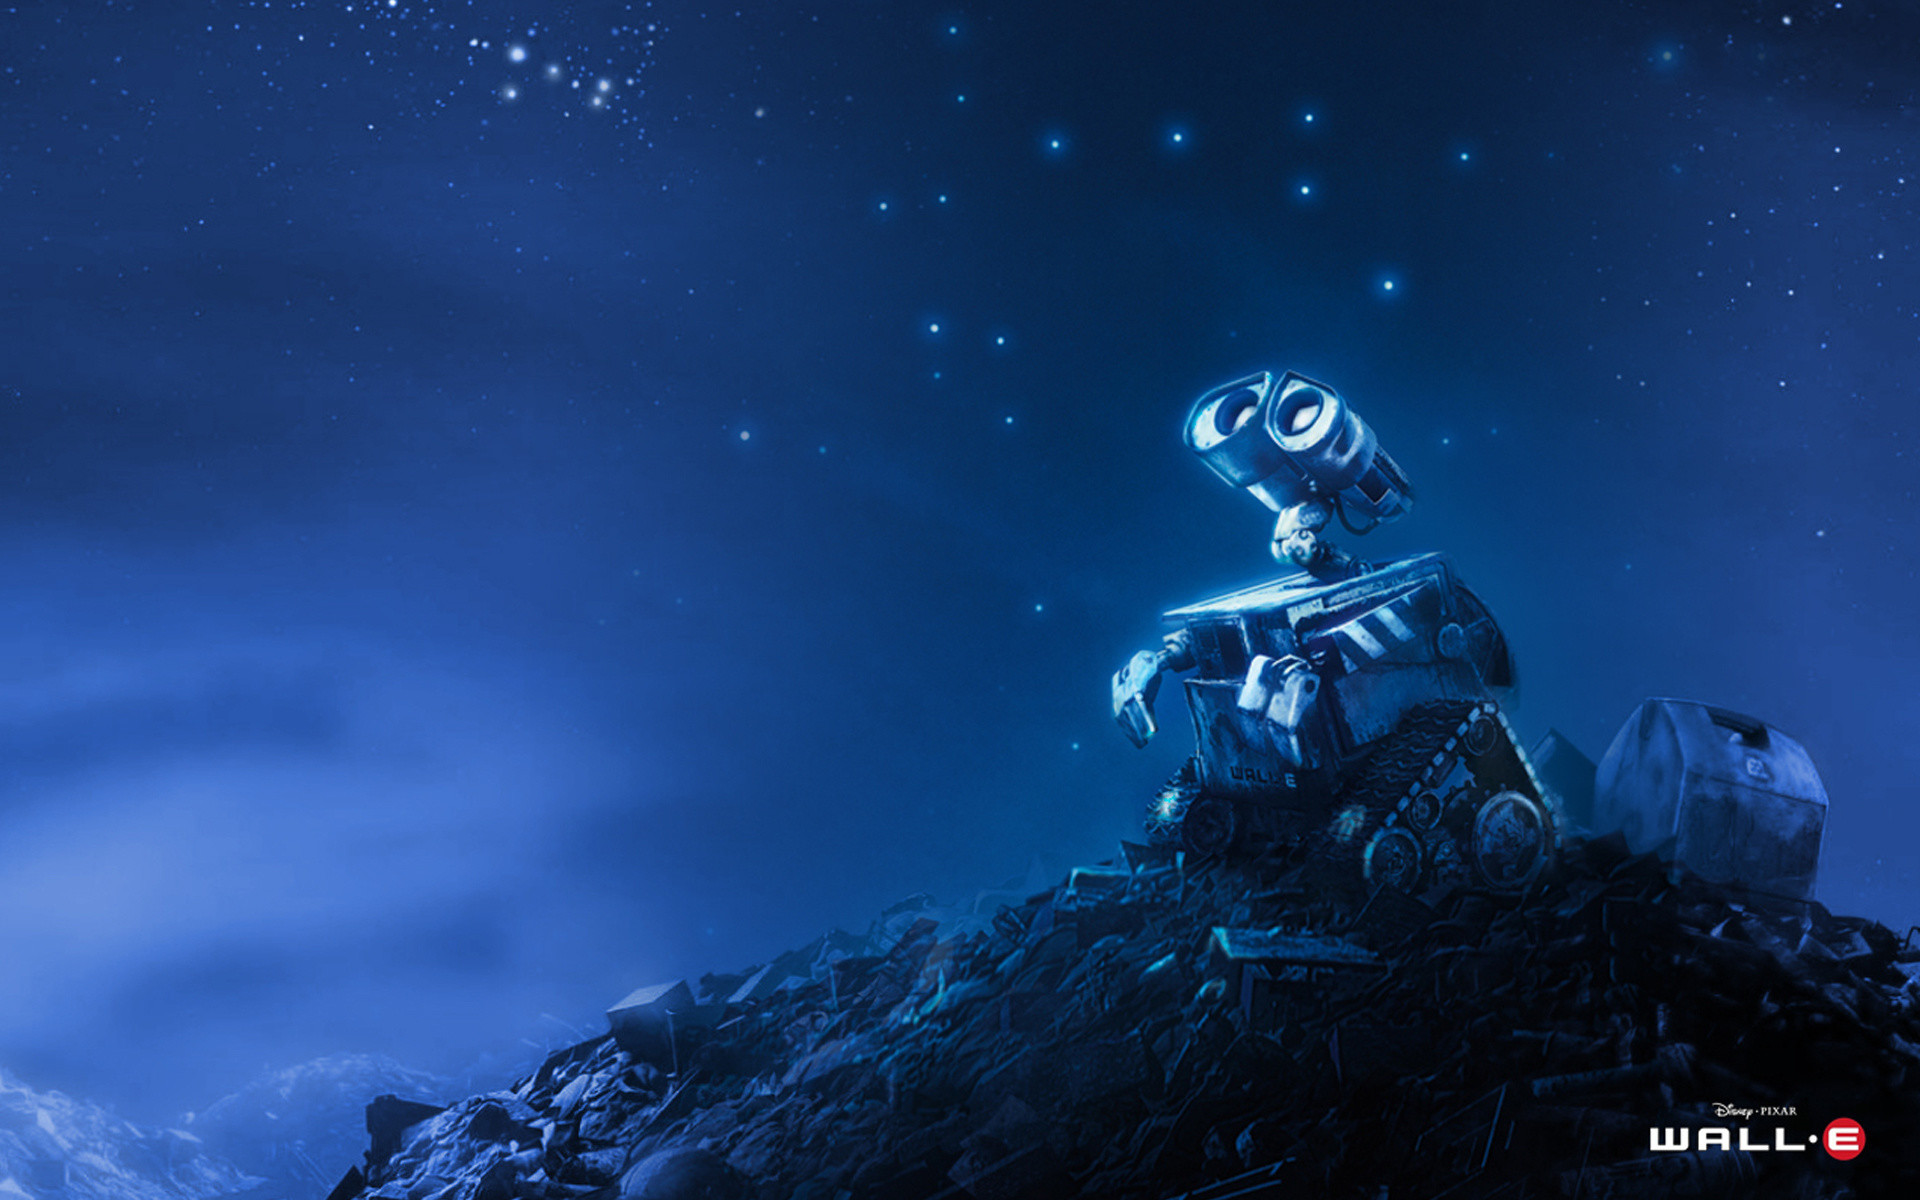 1920x1200 ... Disney HD Wallpapers - Wallpaper Gallery · Pixar ...